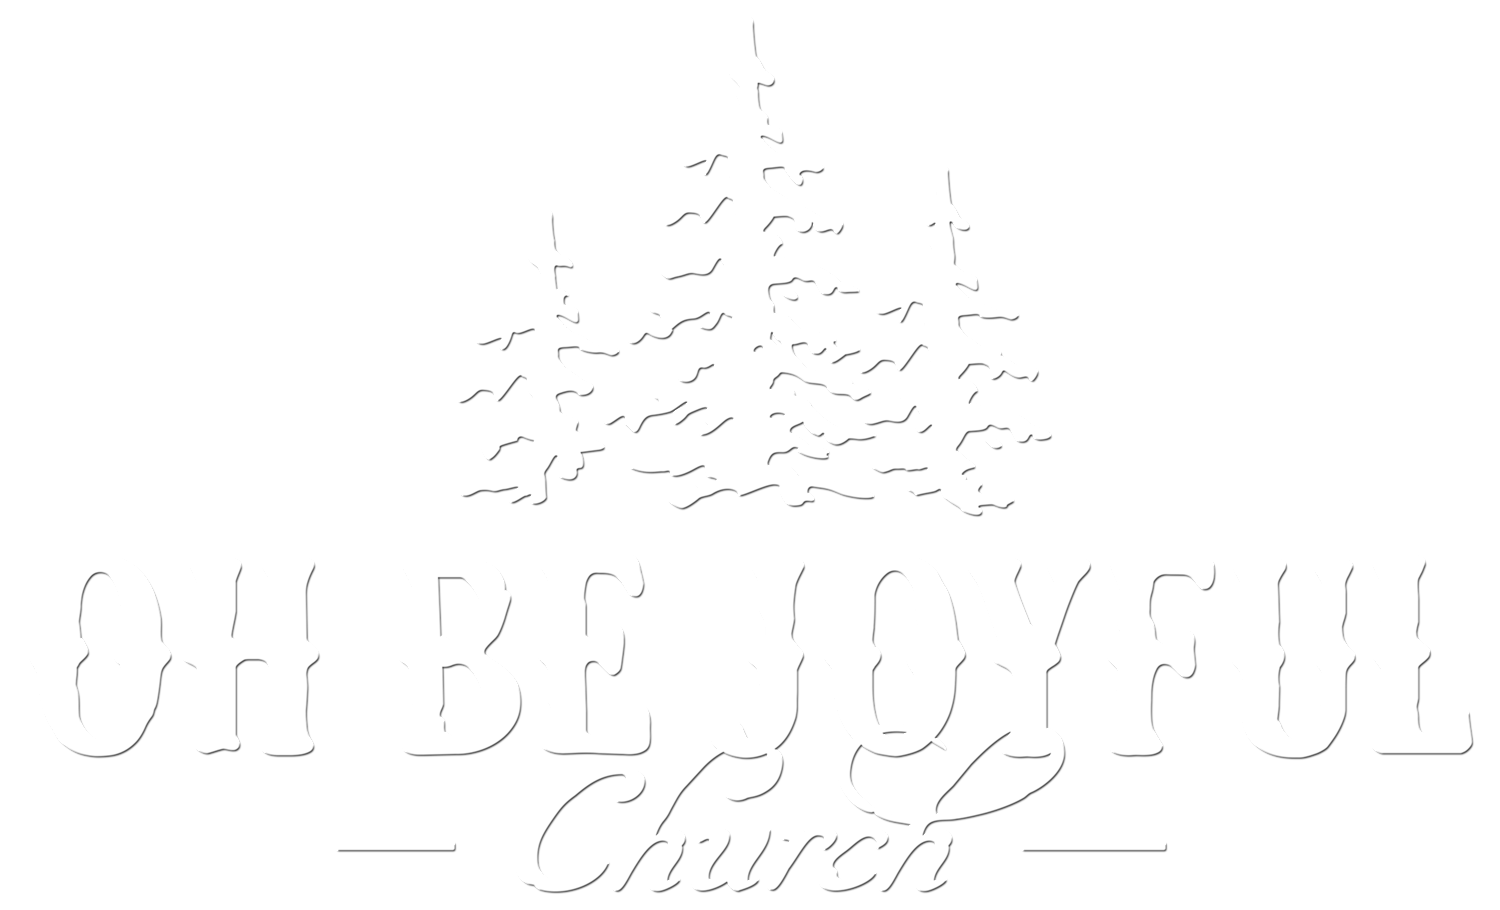 Oh Be Joyful Church